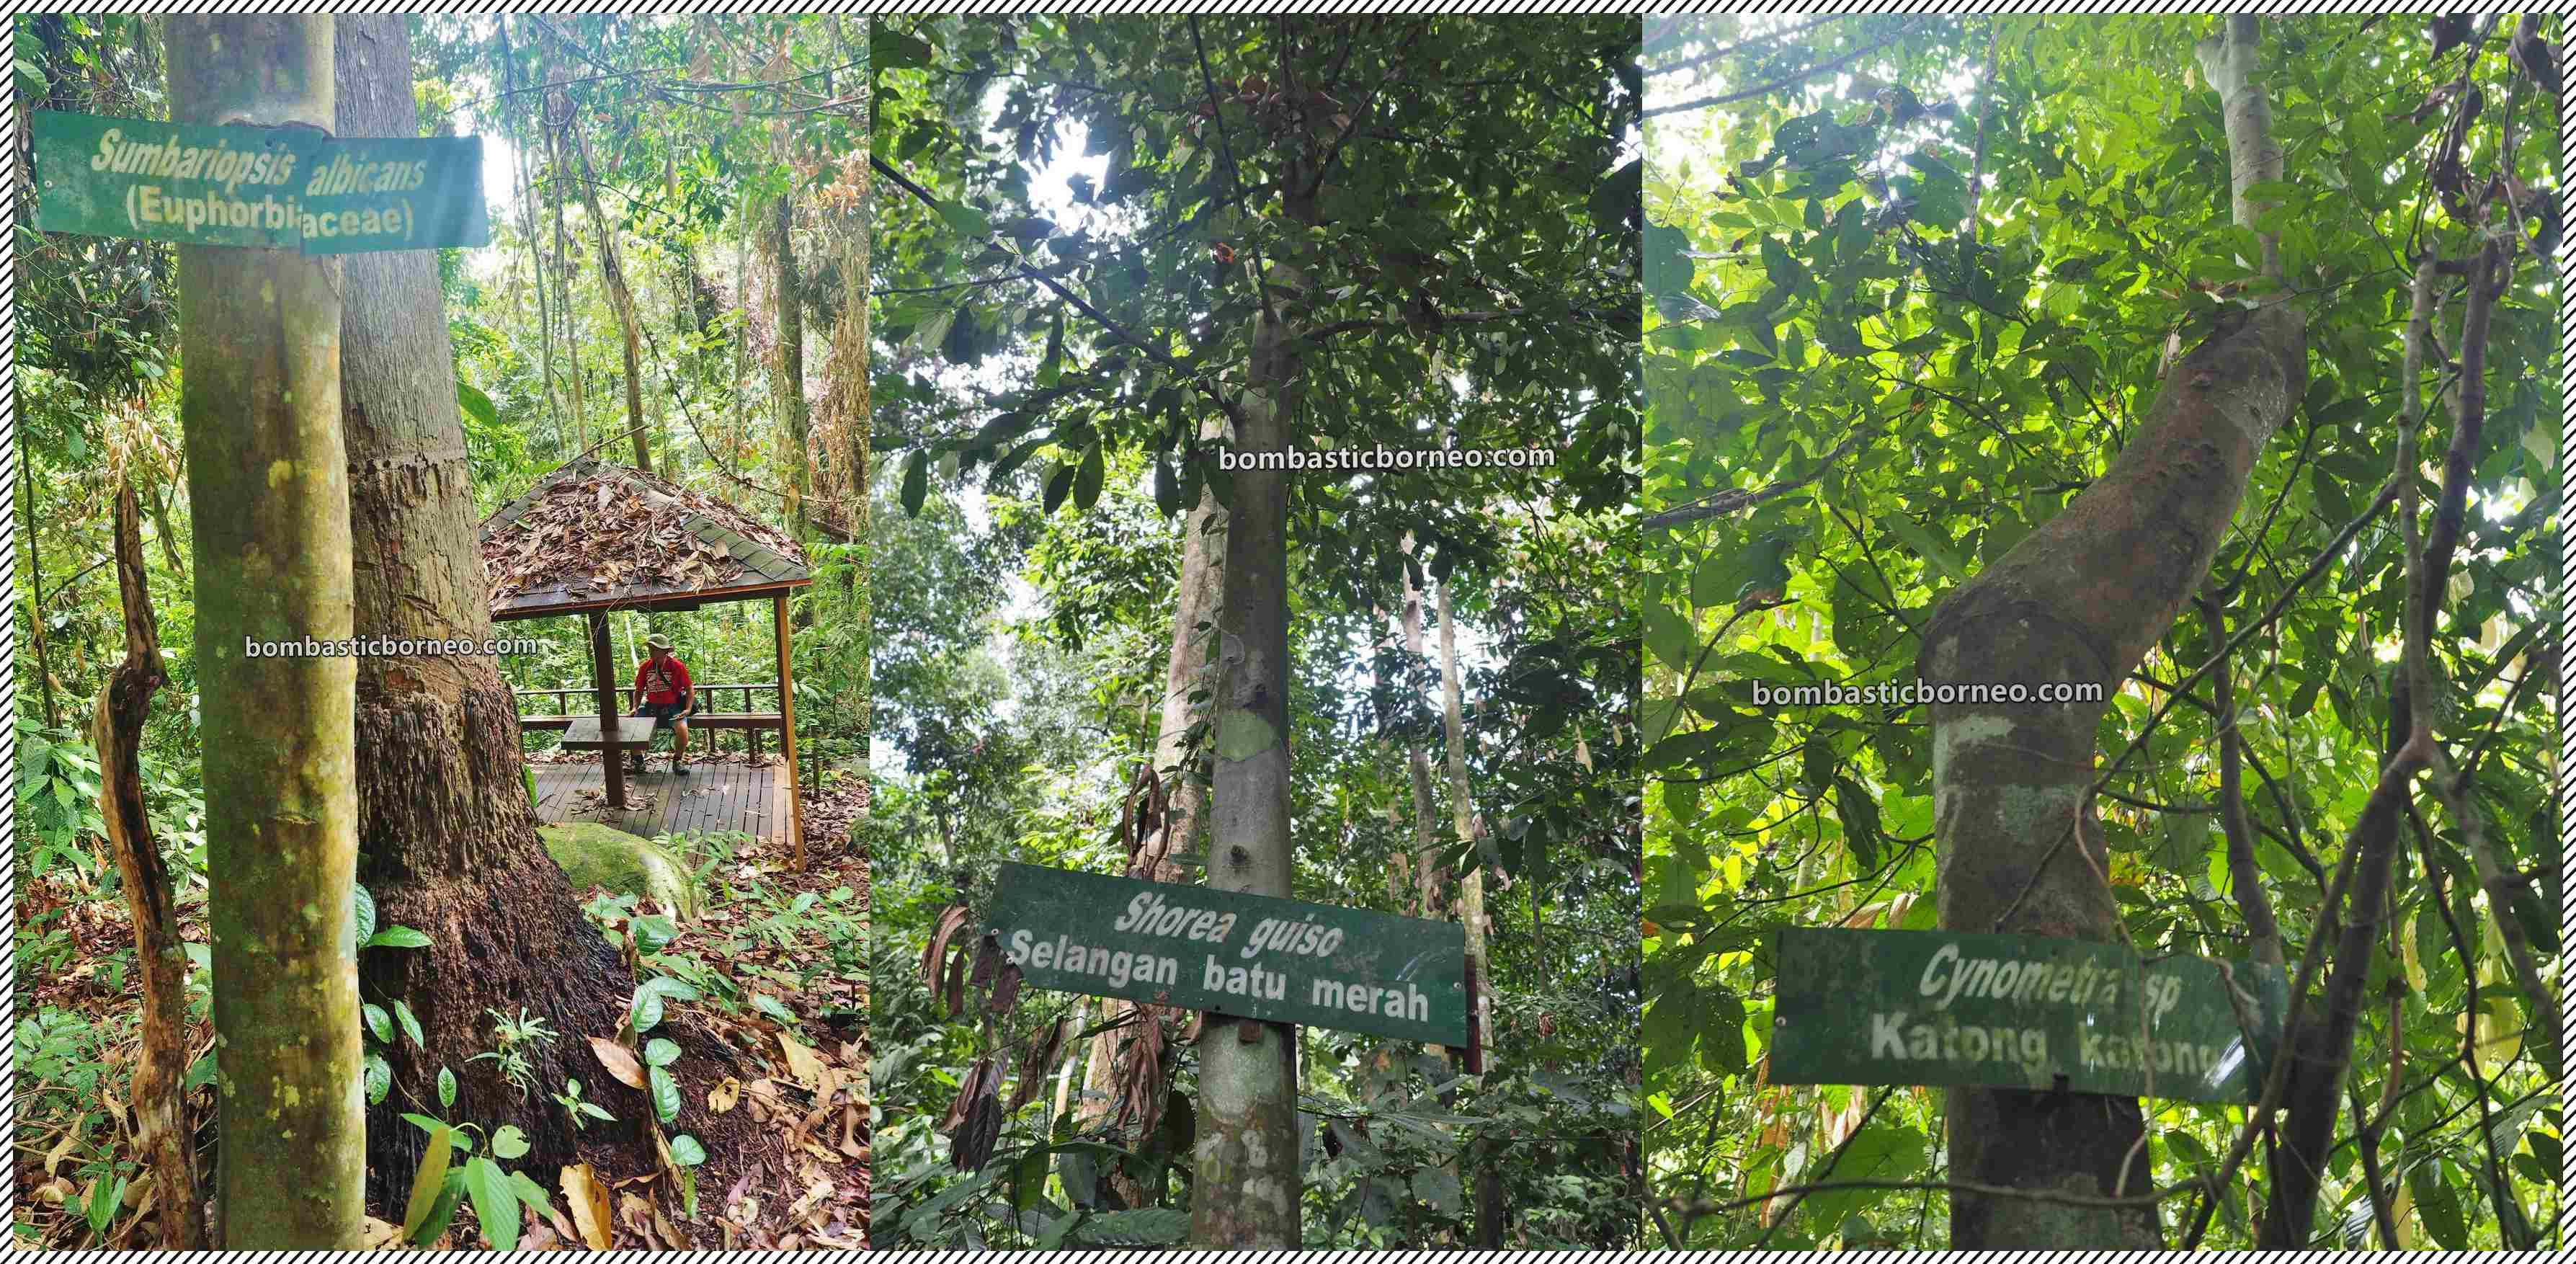 Pusat Sejadi Bukit Gemok, Gemok Hill Forest Reserve, adventure, nature, jungle trekking, hiking, exploration, destination, Hutan simpan, Tawau, tourism, Sabah, Tourist attraction, travel guide, Trans Borneo,